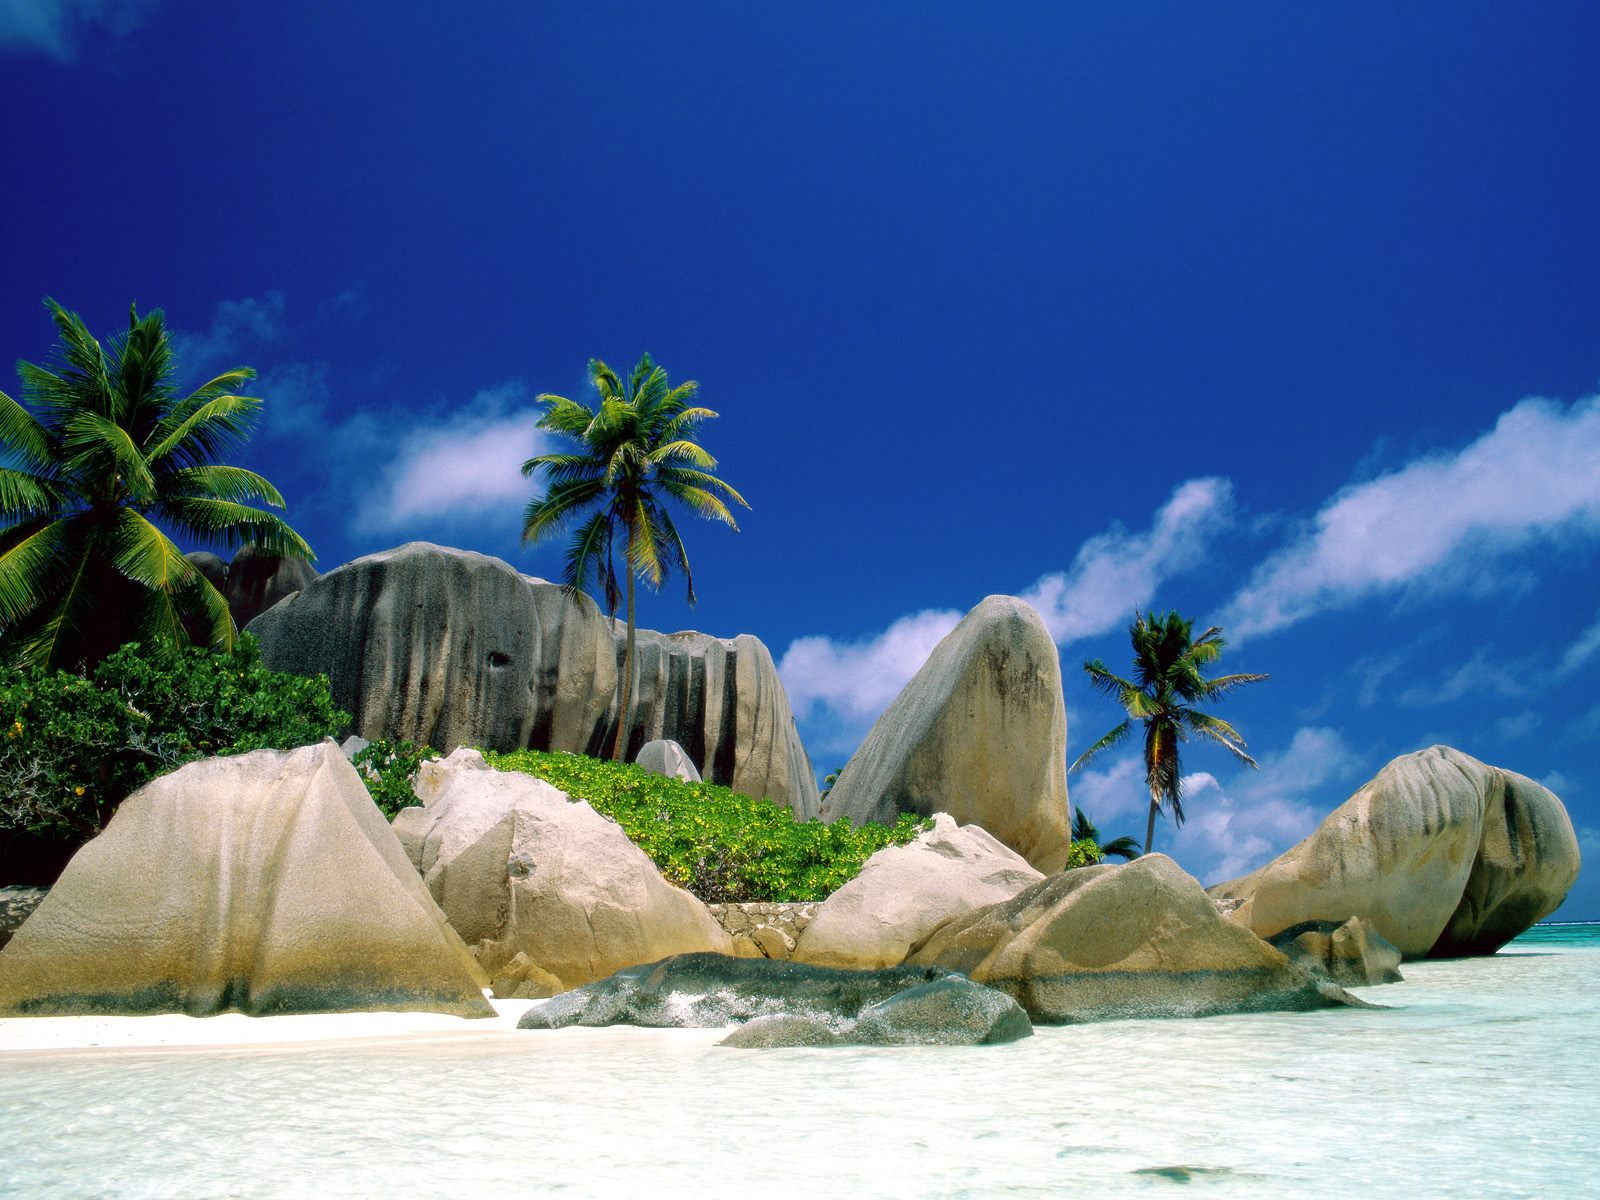 La Digue Islands443033105 - La Digue Islands - Islands, Digue